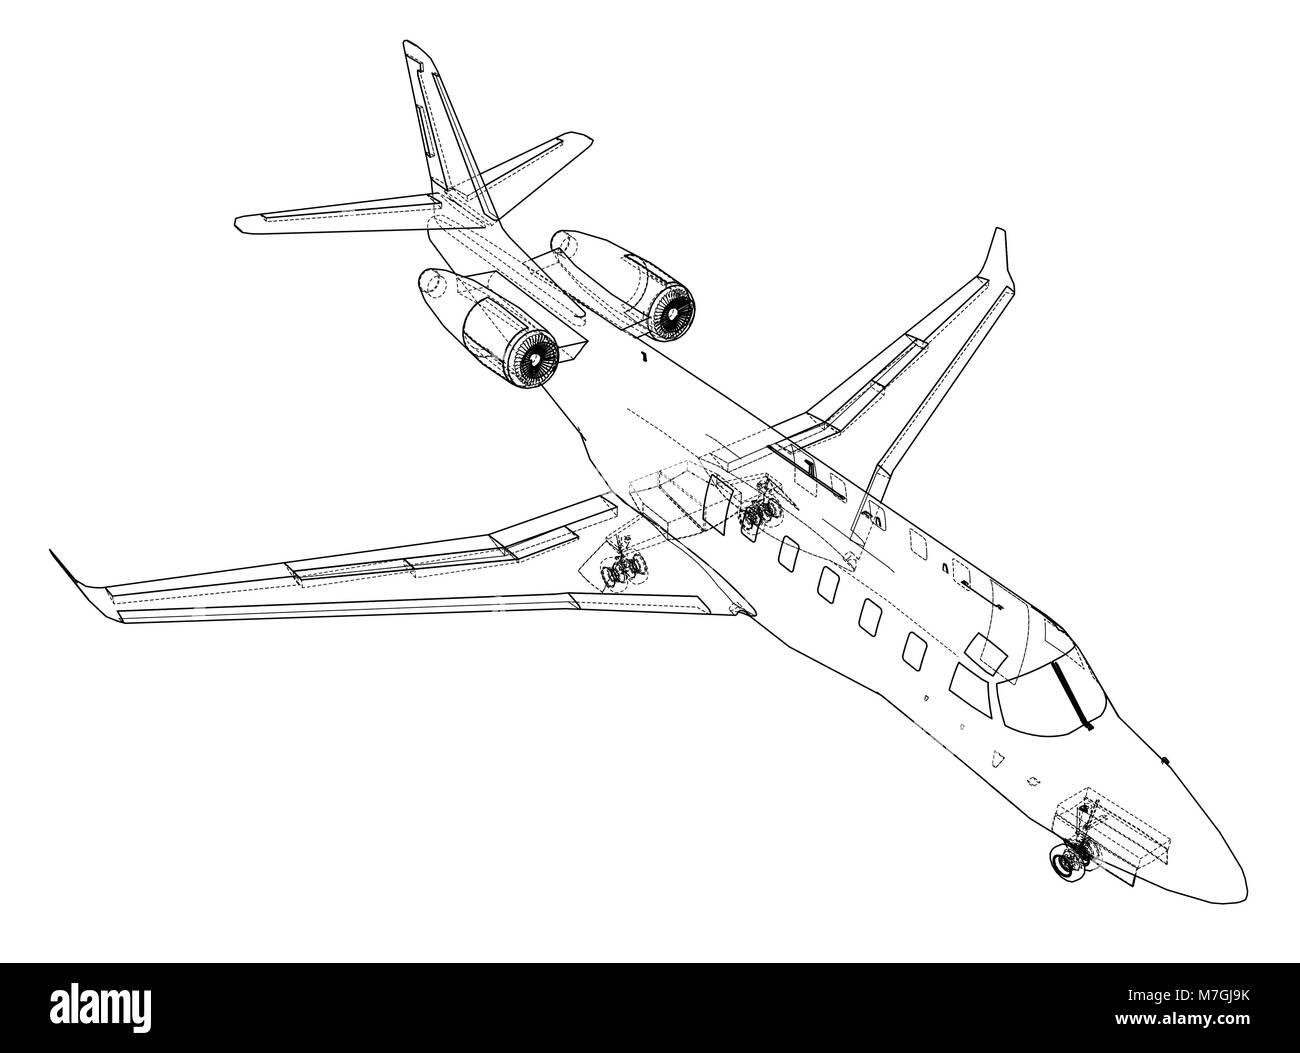 Airplane blueprint vector stock vector art illustration vector airplane blueprint vector malvernweather Image collections